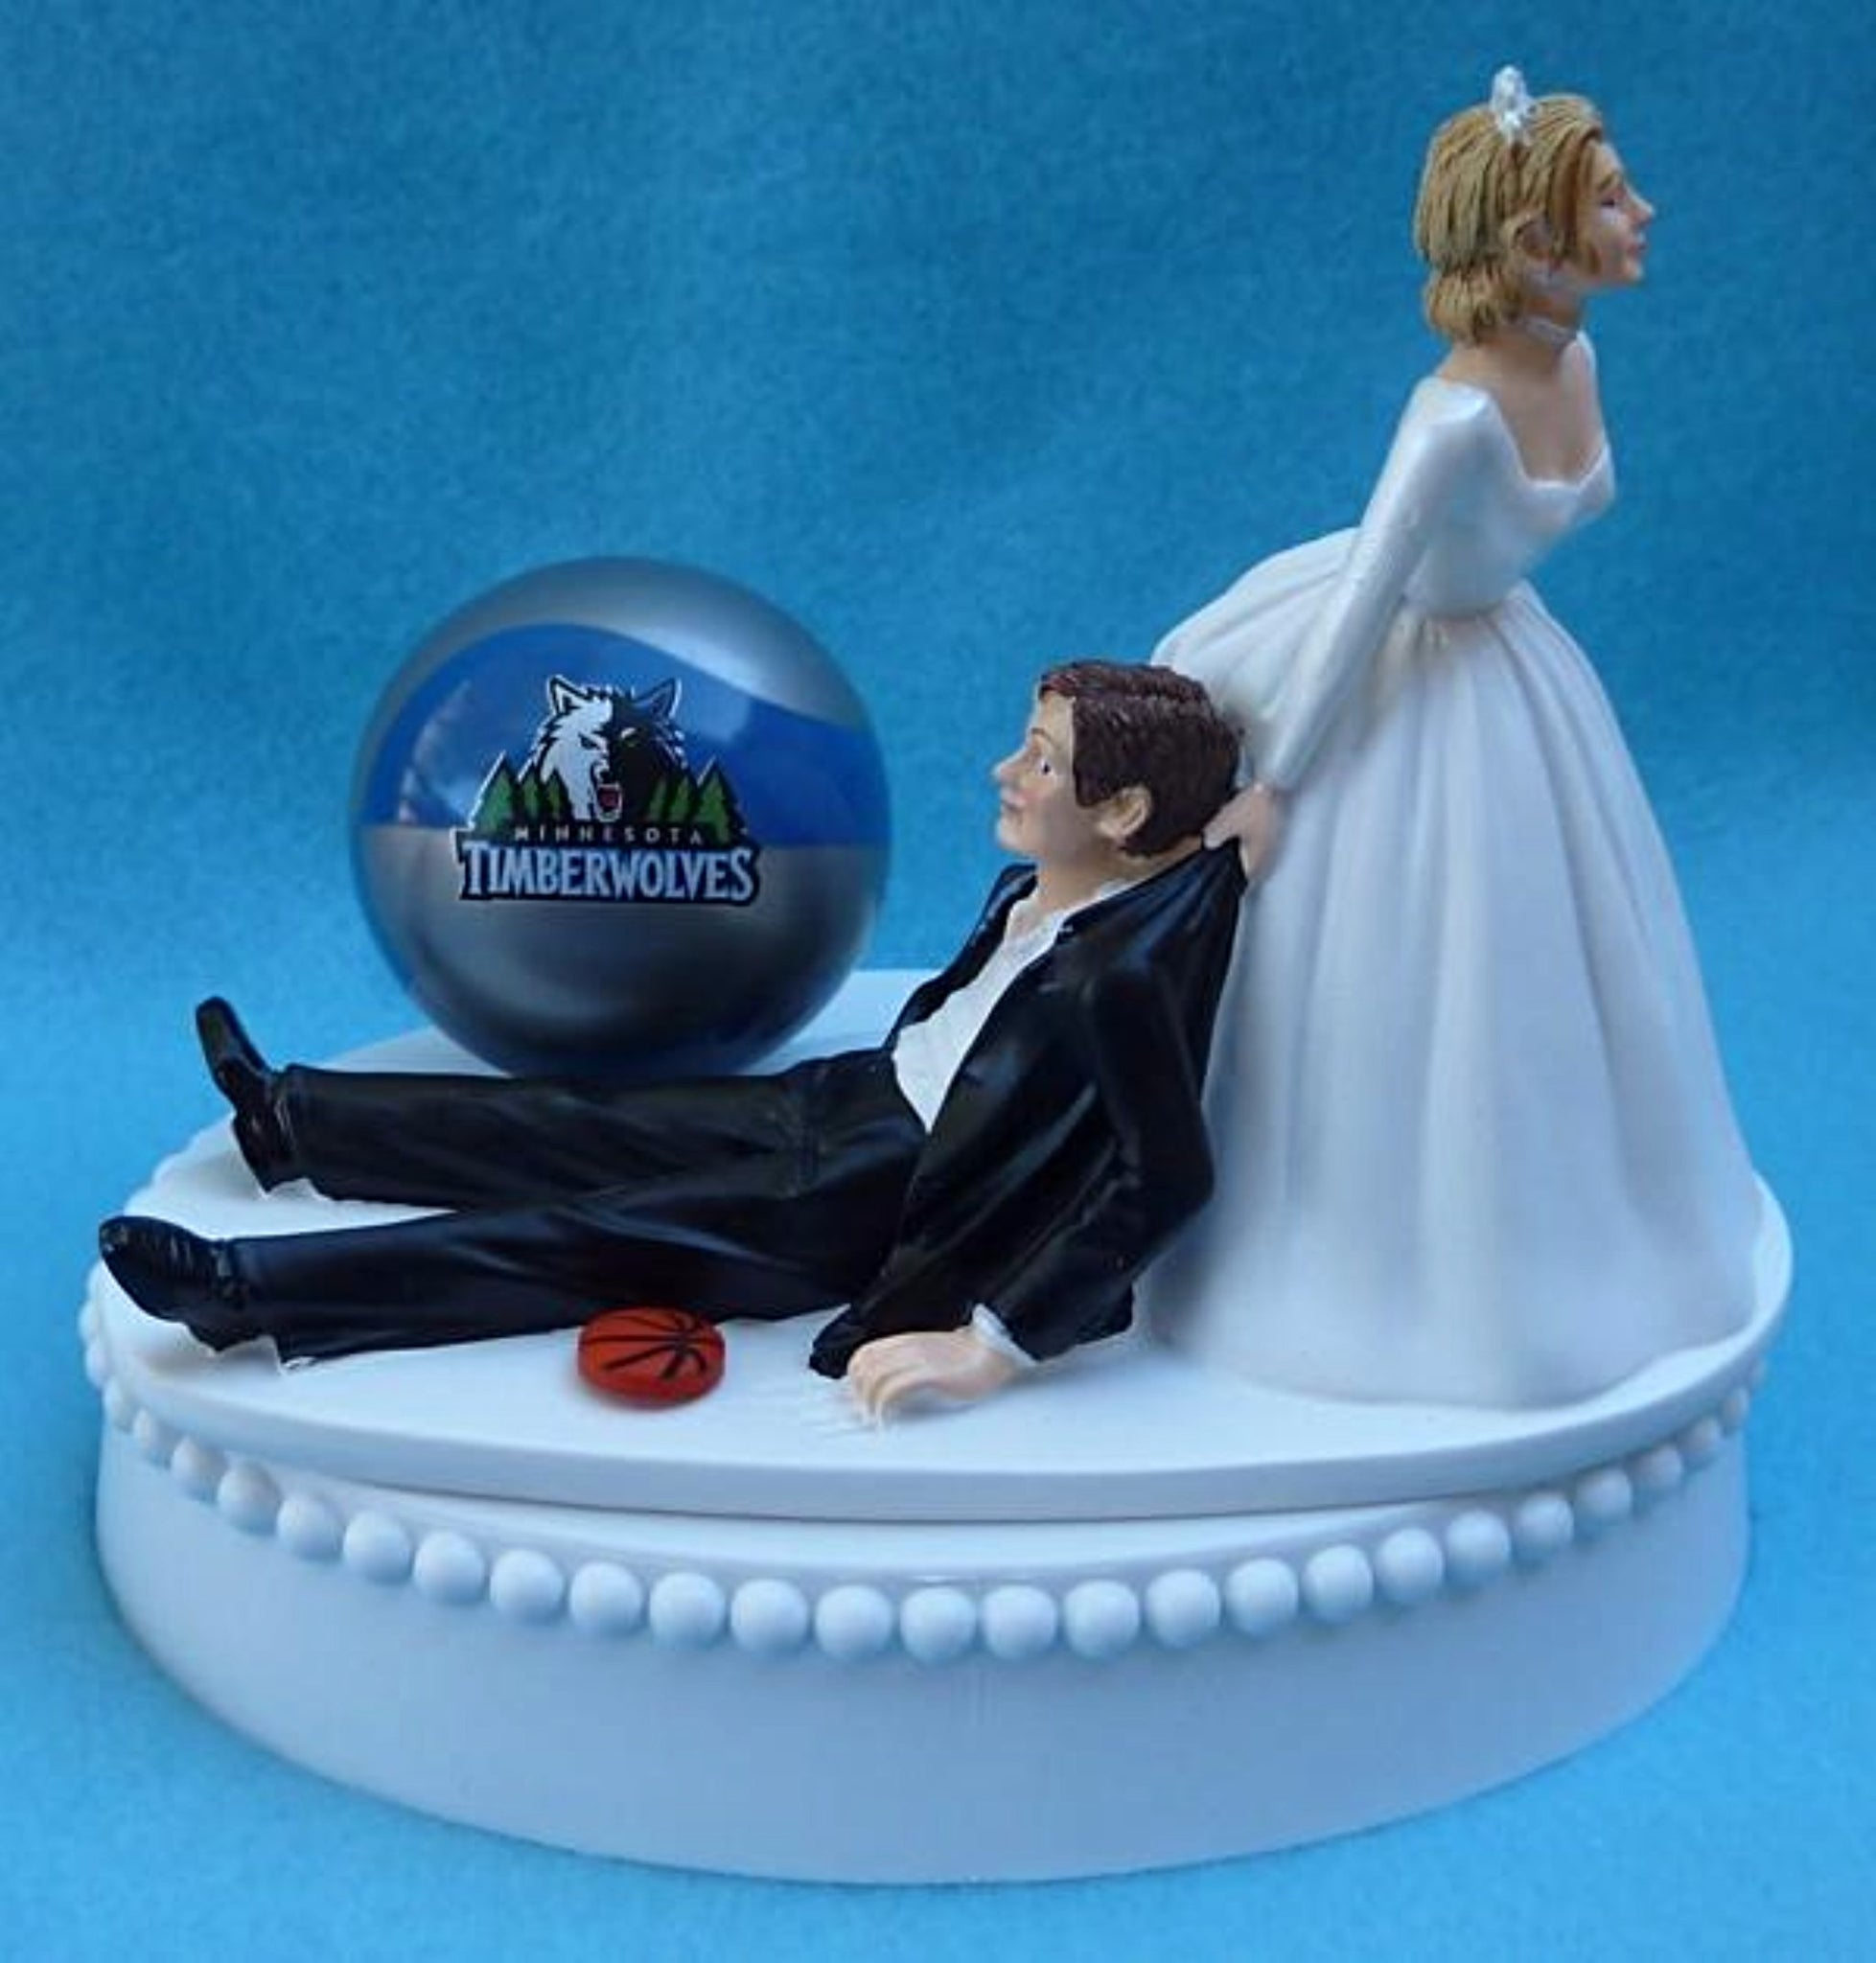 Minnesota Timberwolves wedding cake topper T-Wolves TWolves NBA basketball sports fans fun bride dragging groom humorous funny Fun Wedding Things